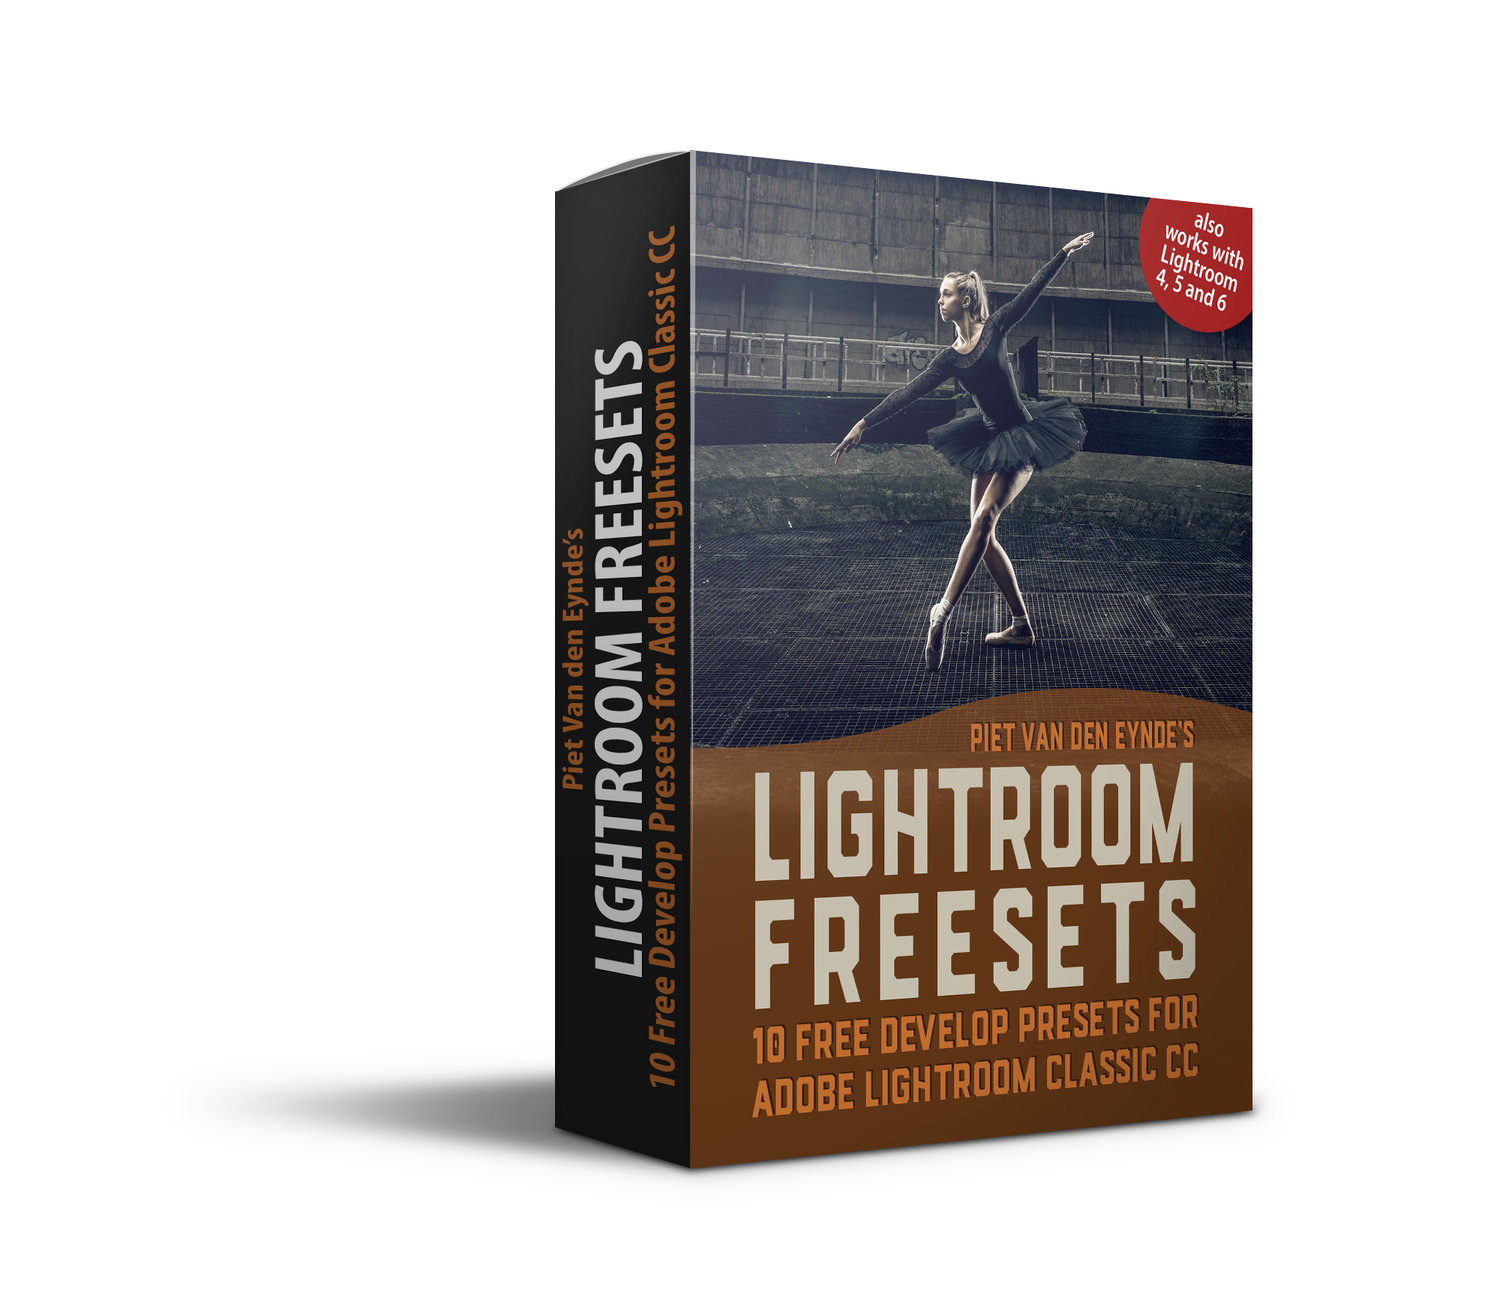 Freesets: My Free Lightroom Presets — MoreThanWords be